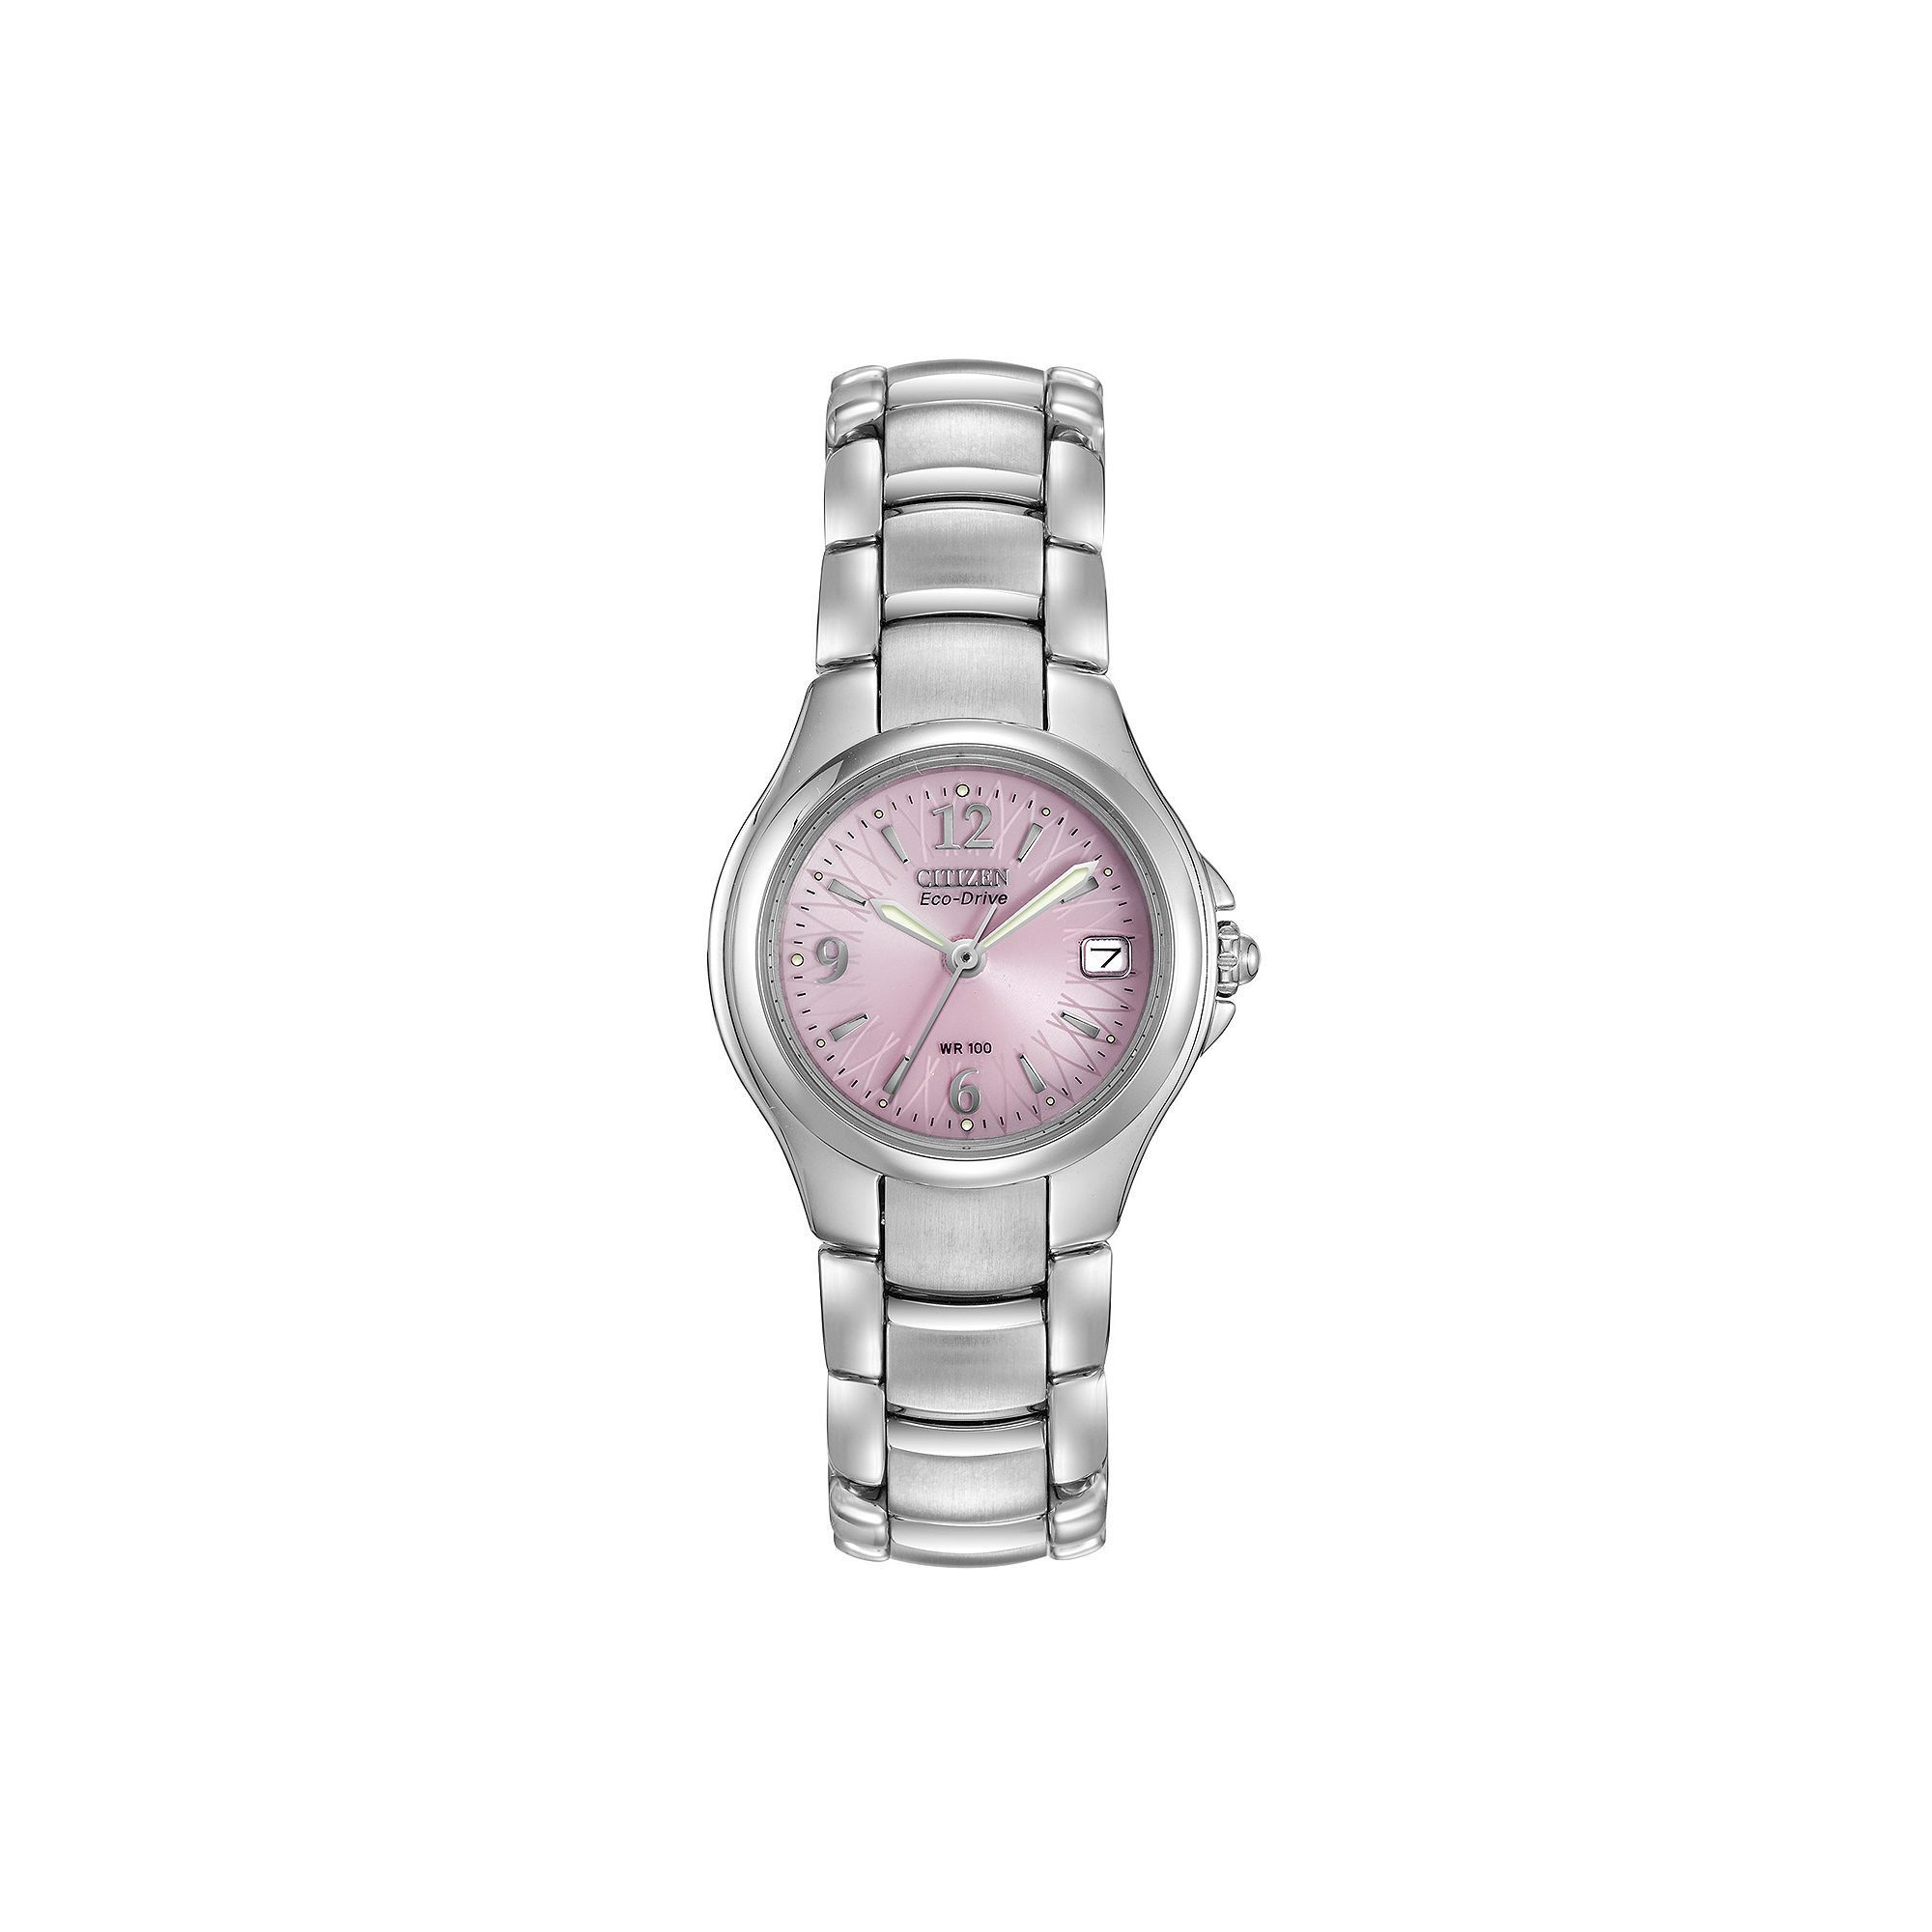 857cf84402fa9e Citizen Eco-Drive Women's Silhouette Sport Stainless Steel Watch -  EW1170-51X, Size: Small, Grey